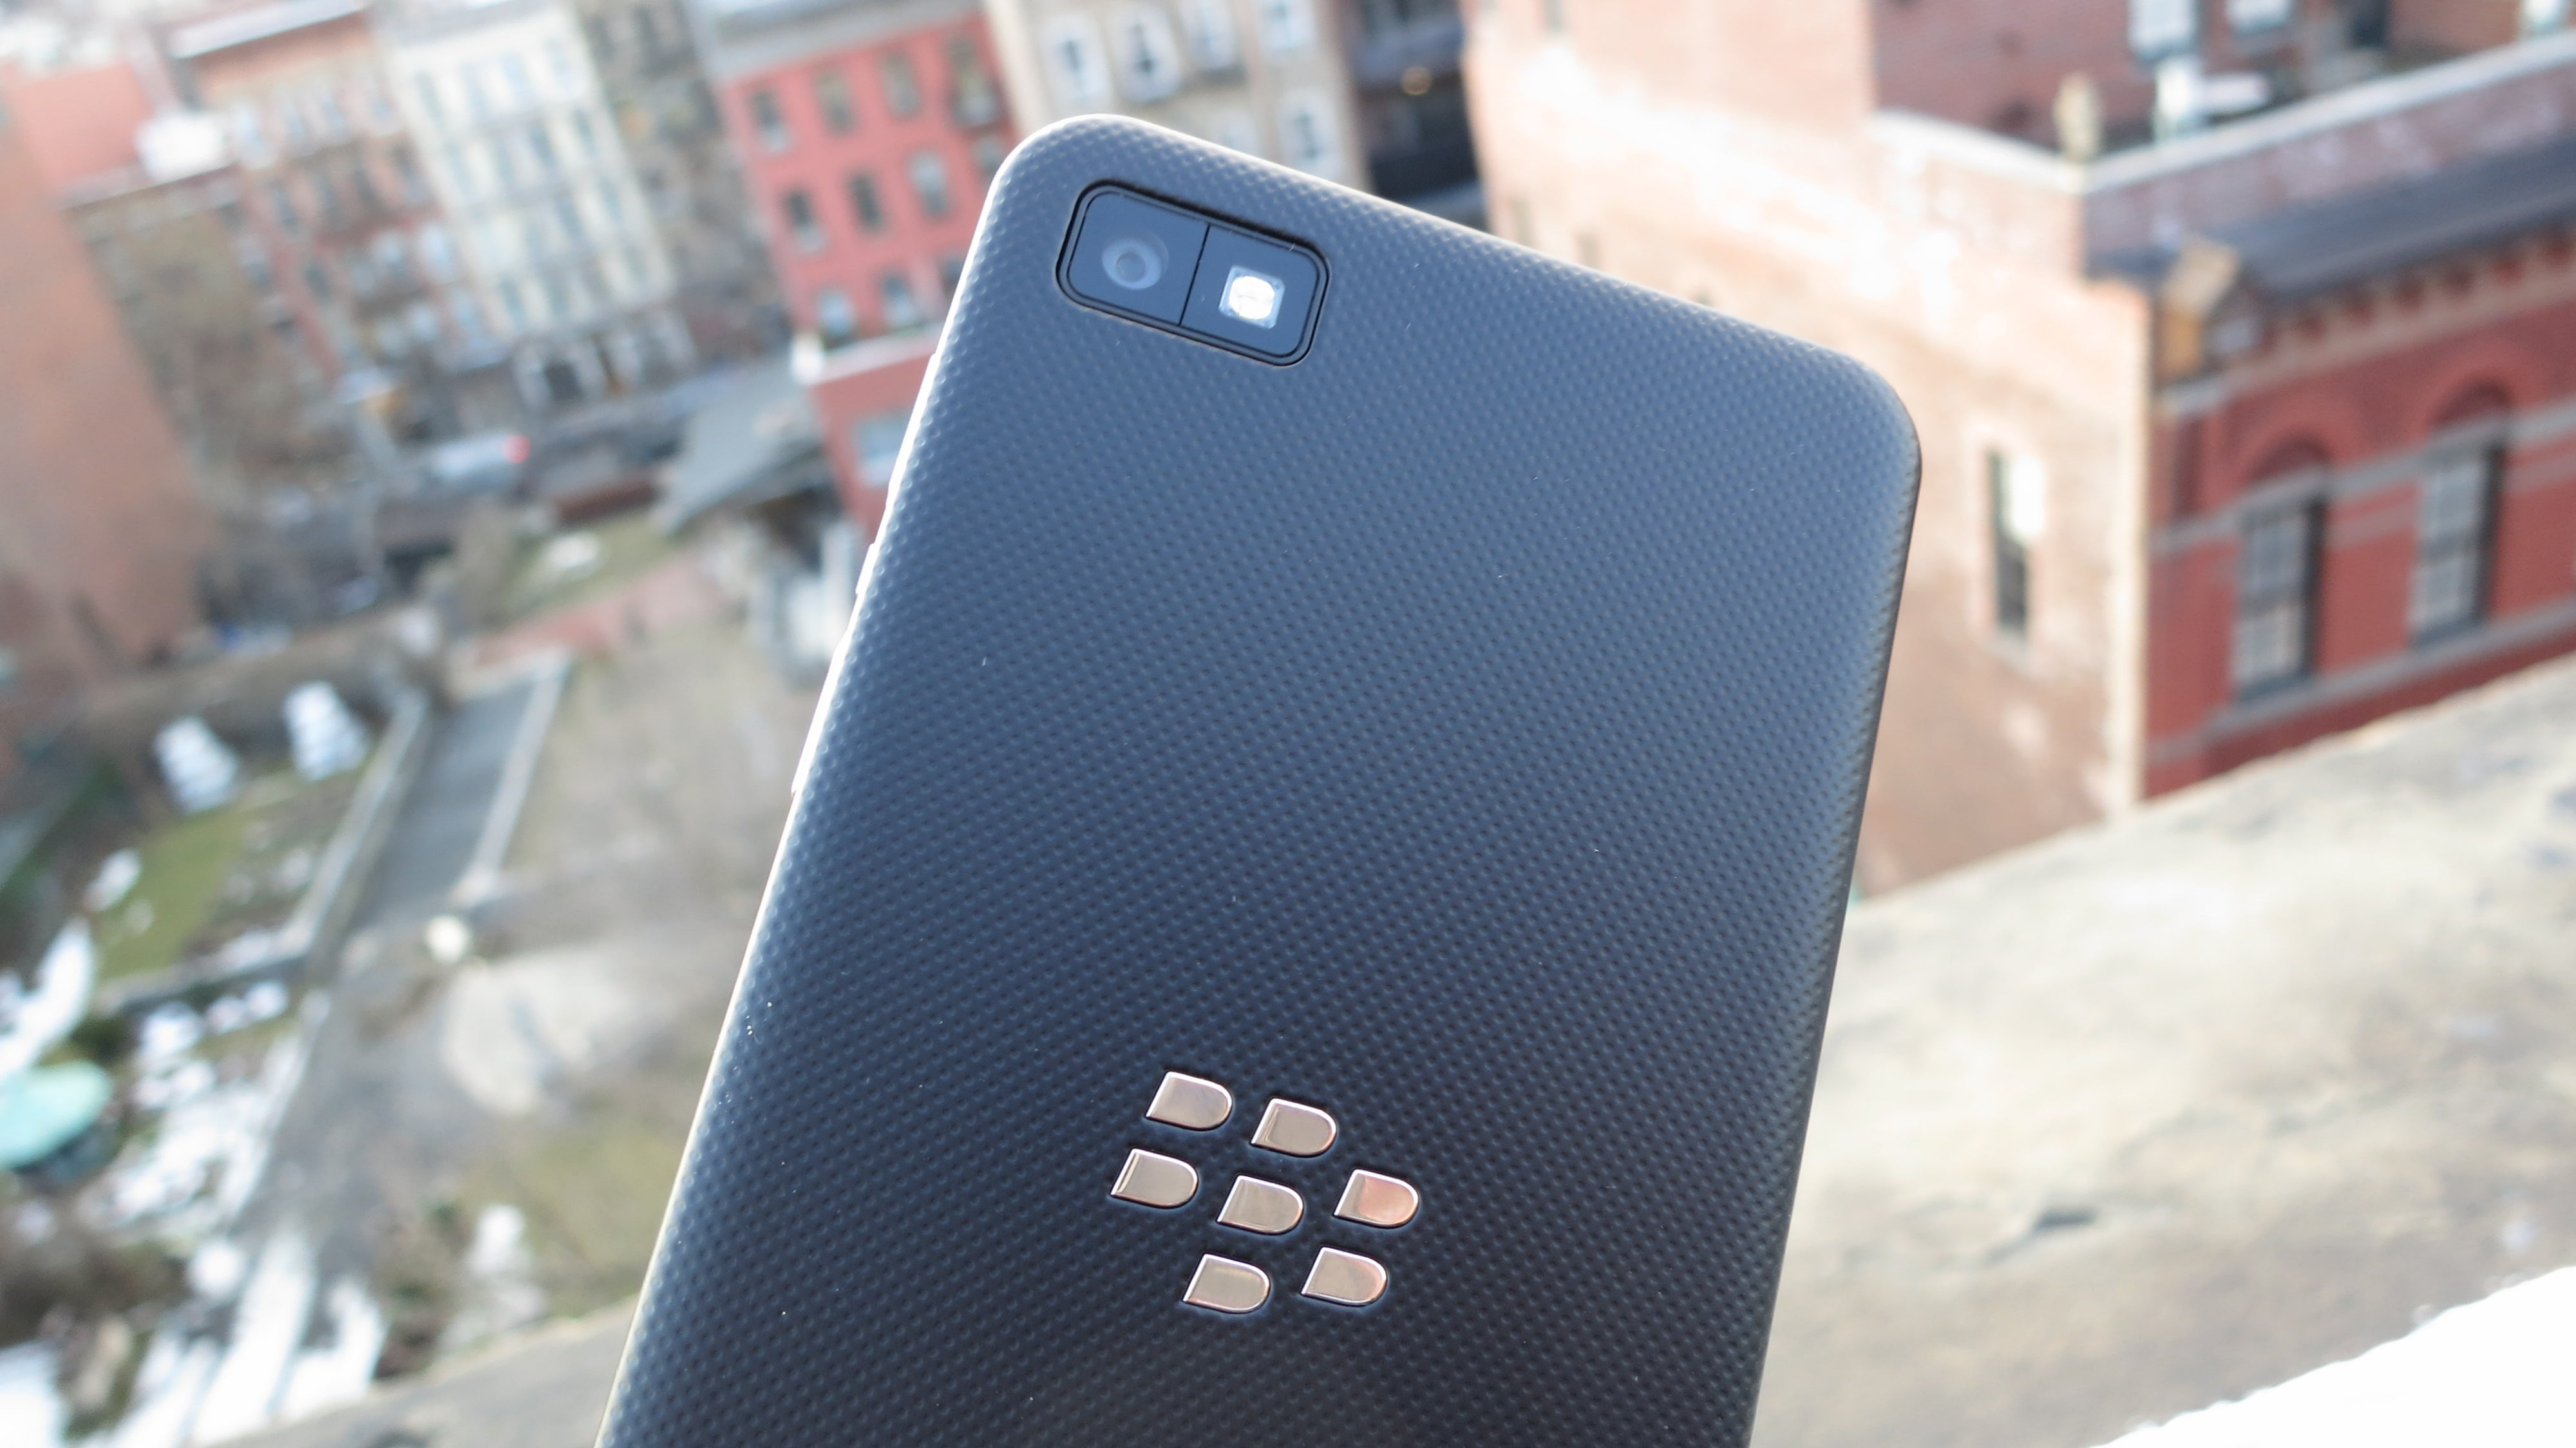 BlackBerry Z10 Review: Not Good Enough